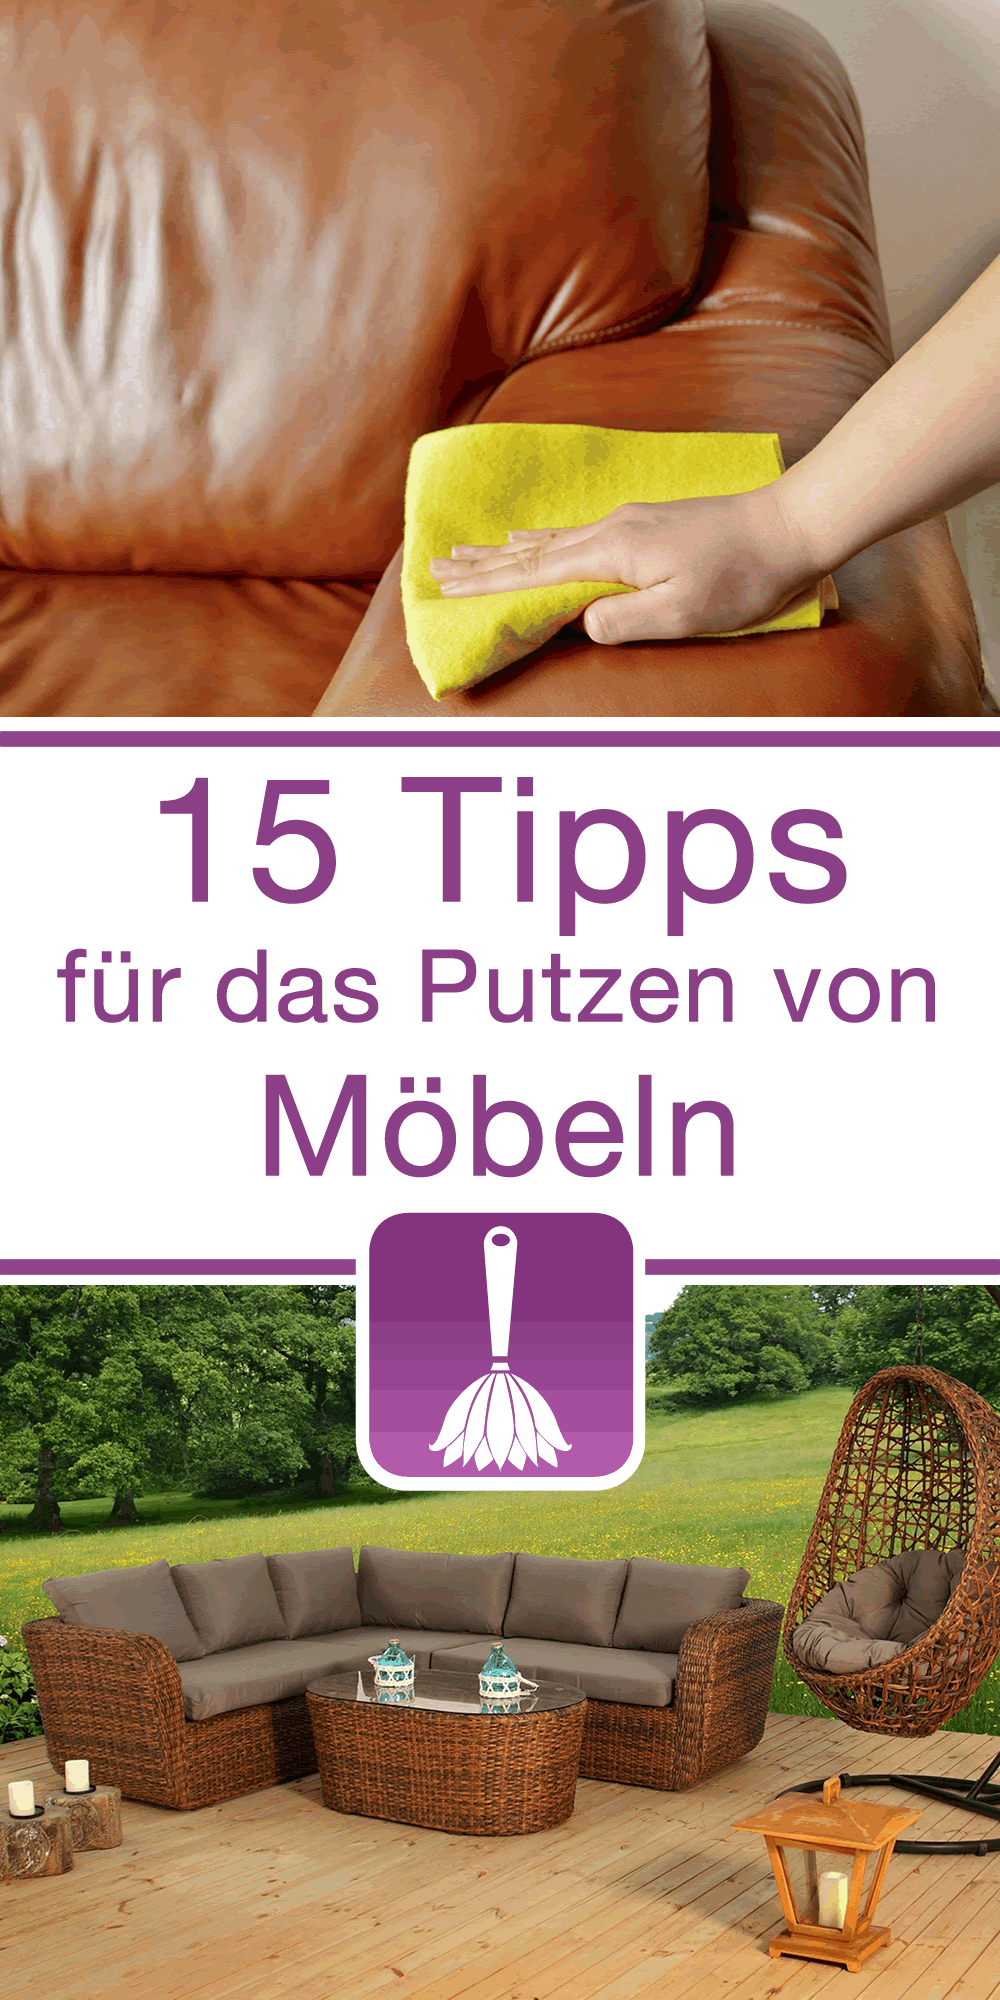 15 tipps tricks f r das putzen von m beln. Black Bedroom Furniture Sets. Home Design Ideas